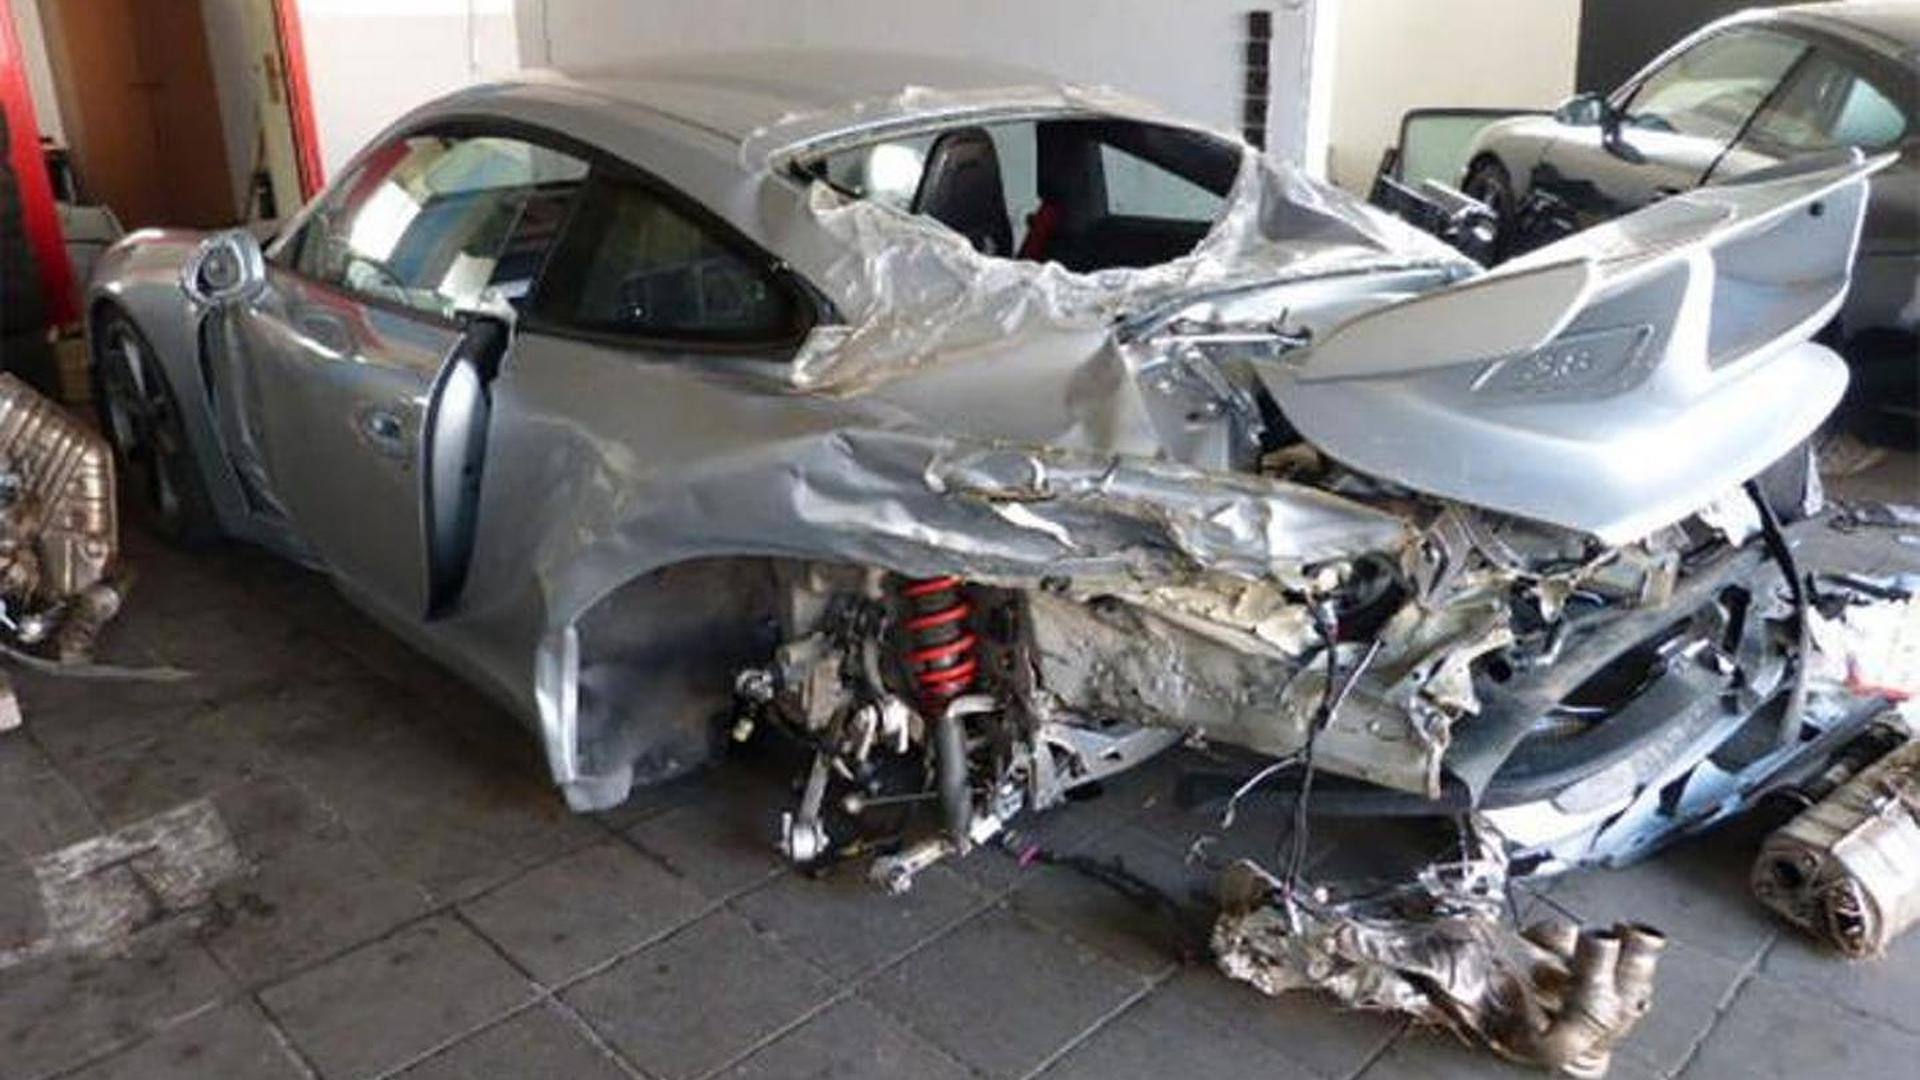 Barely driven yet heavily crashed Porsche 991 GT3 costs €49,900